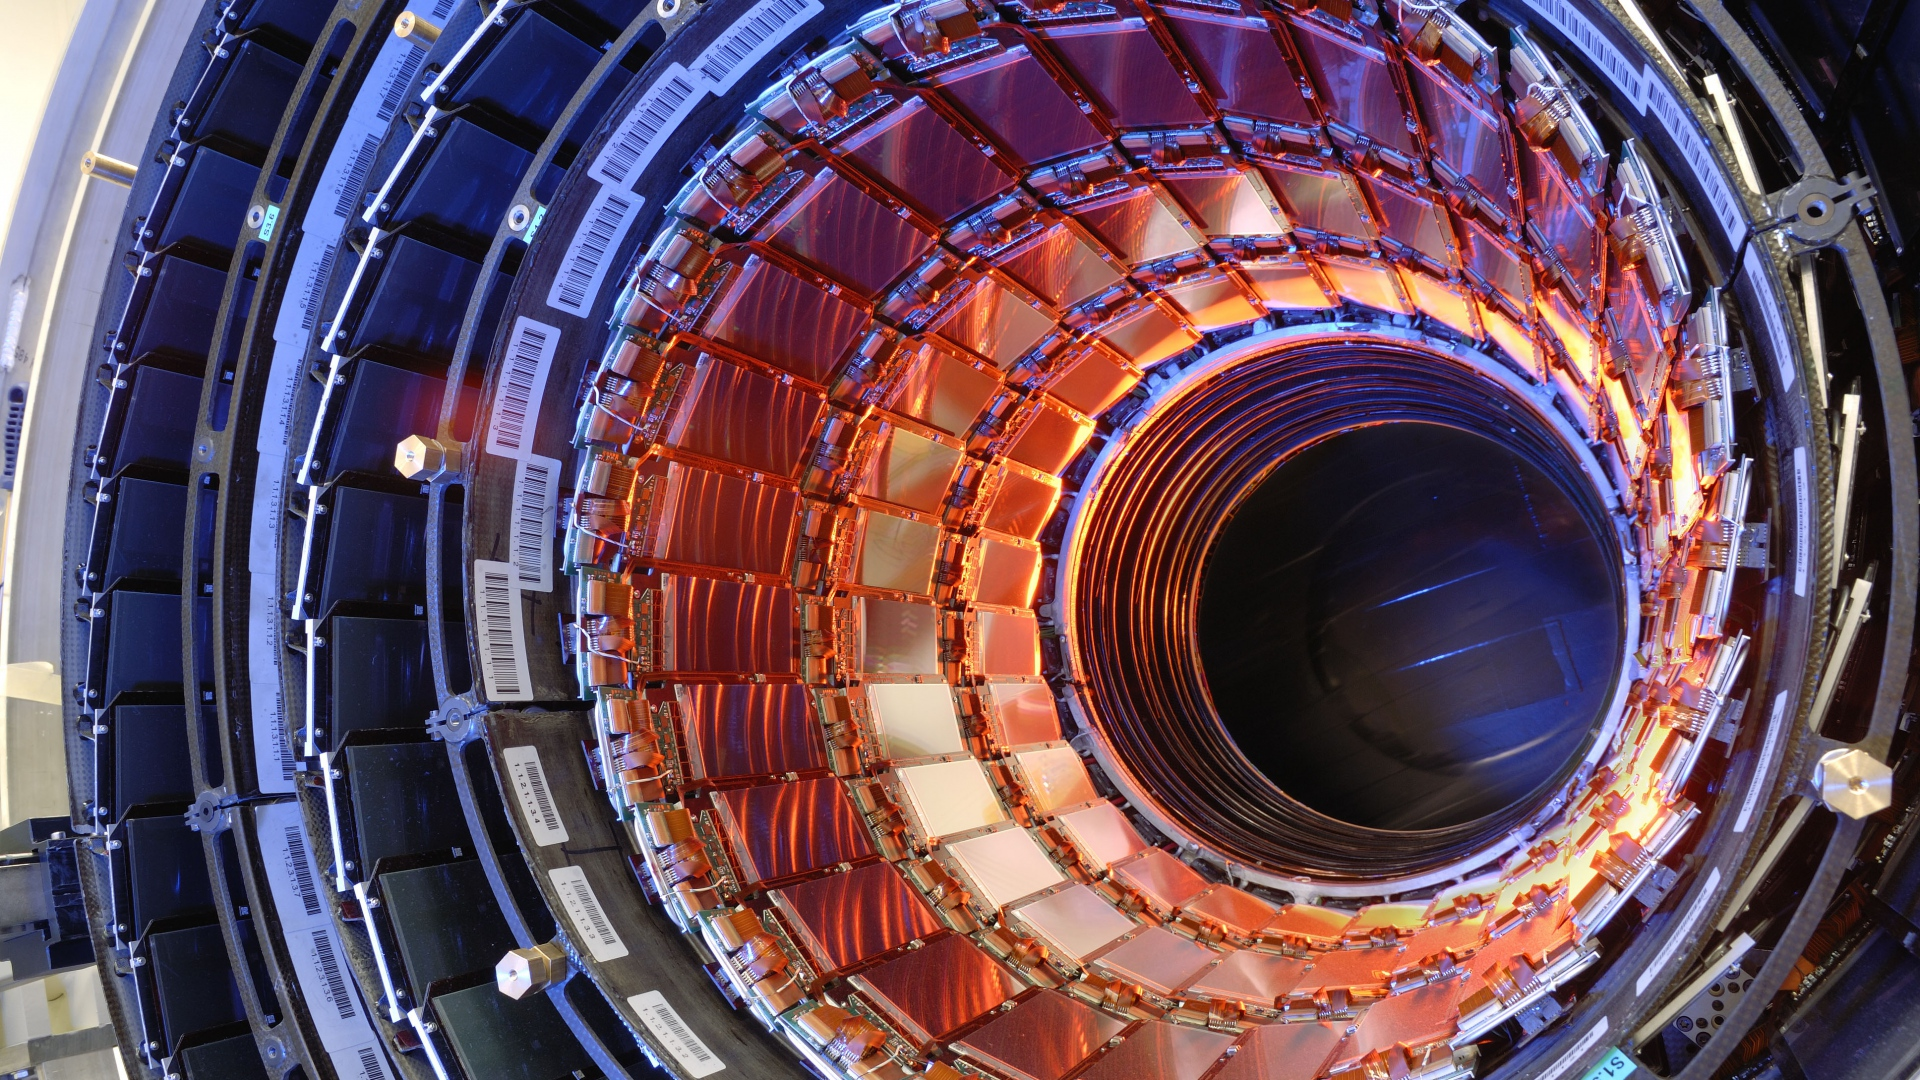 Accelerator Particles News Pictures And Videos Learn All About Hadron Collider From Wallpapers4uorg Your Wallpaper